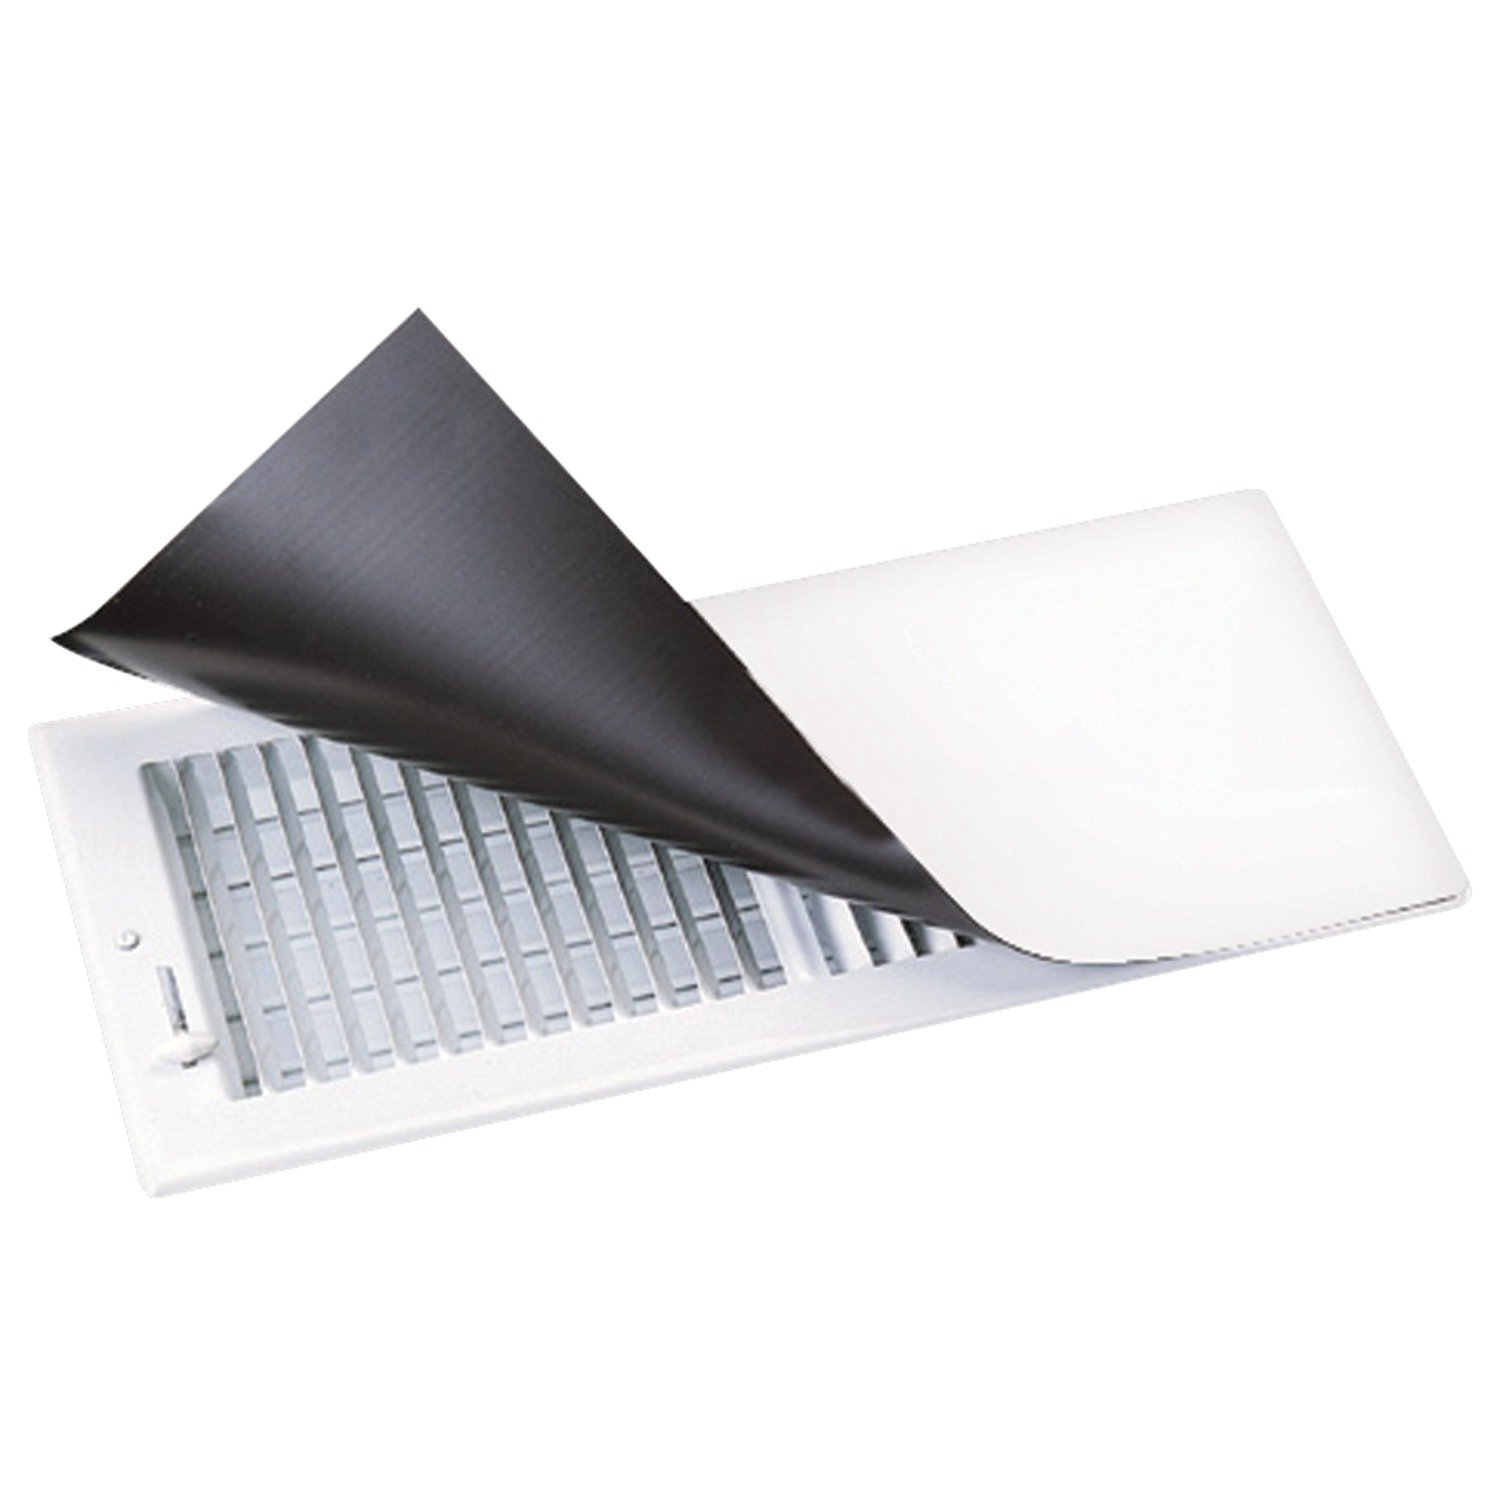 #5B6370 Heating And Air Conditioning: Magnetic Ac Vent Covers Best 3573 Heating Duct Covers photos with 1500x1500 px on helpvideos.info - Air Conditioners, Air Coolers and more